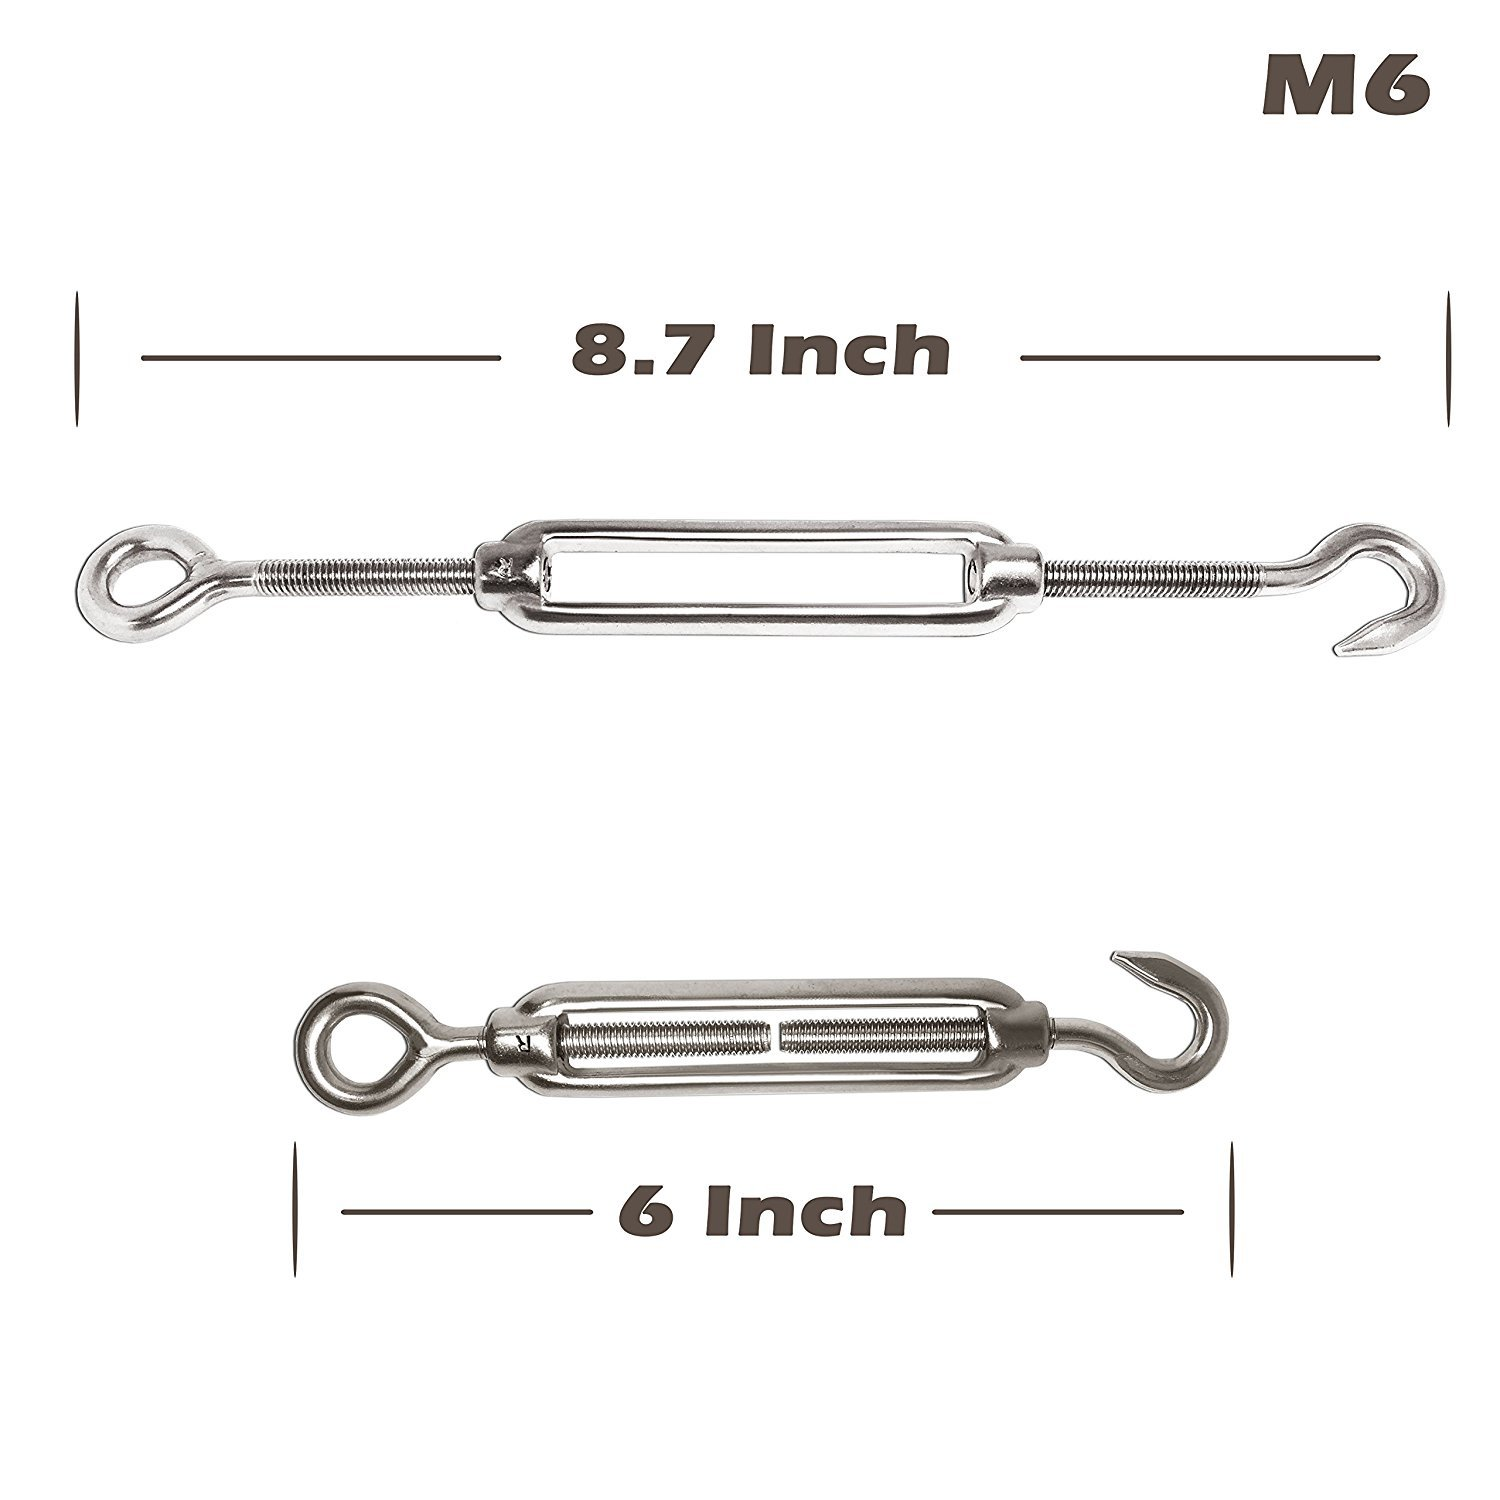 SNOWINSPRING 4-Pcs Turnbuckle//Tension M3 M3 Stainless Steel Kit 16-Pcs 1//8 Inch Wire Rope Cable Clip//Clamp Eye/&Hook, M6 8-Pcs Thimble